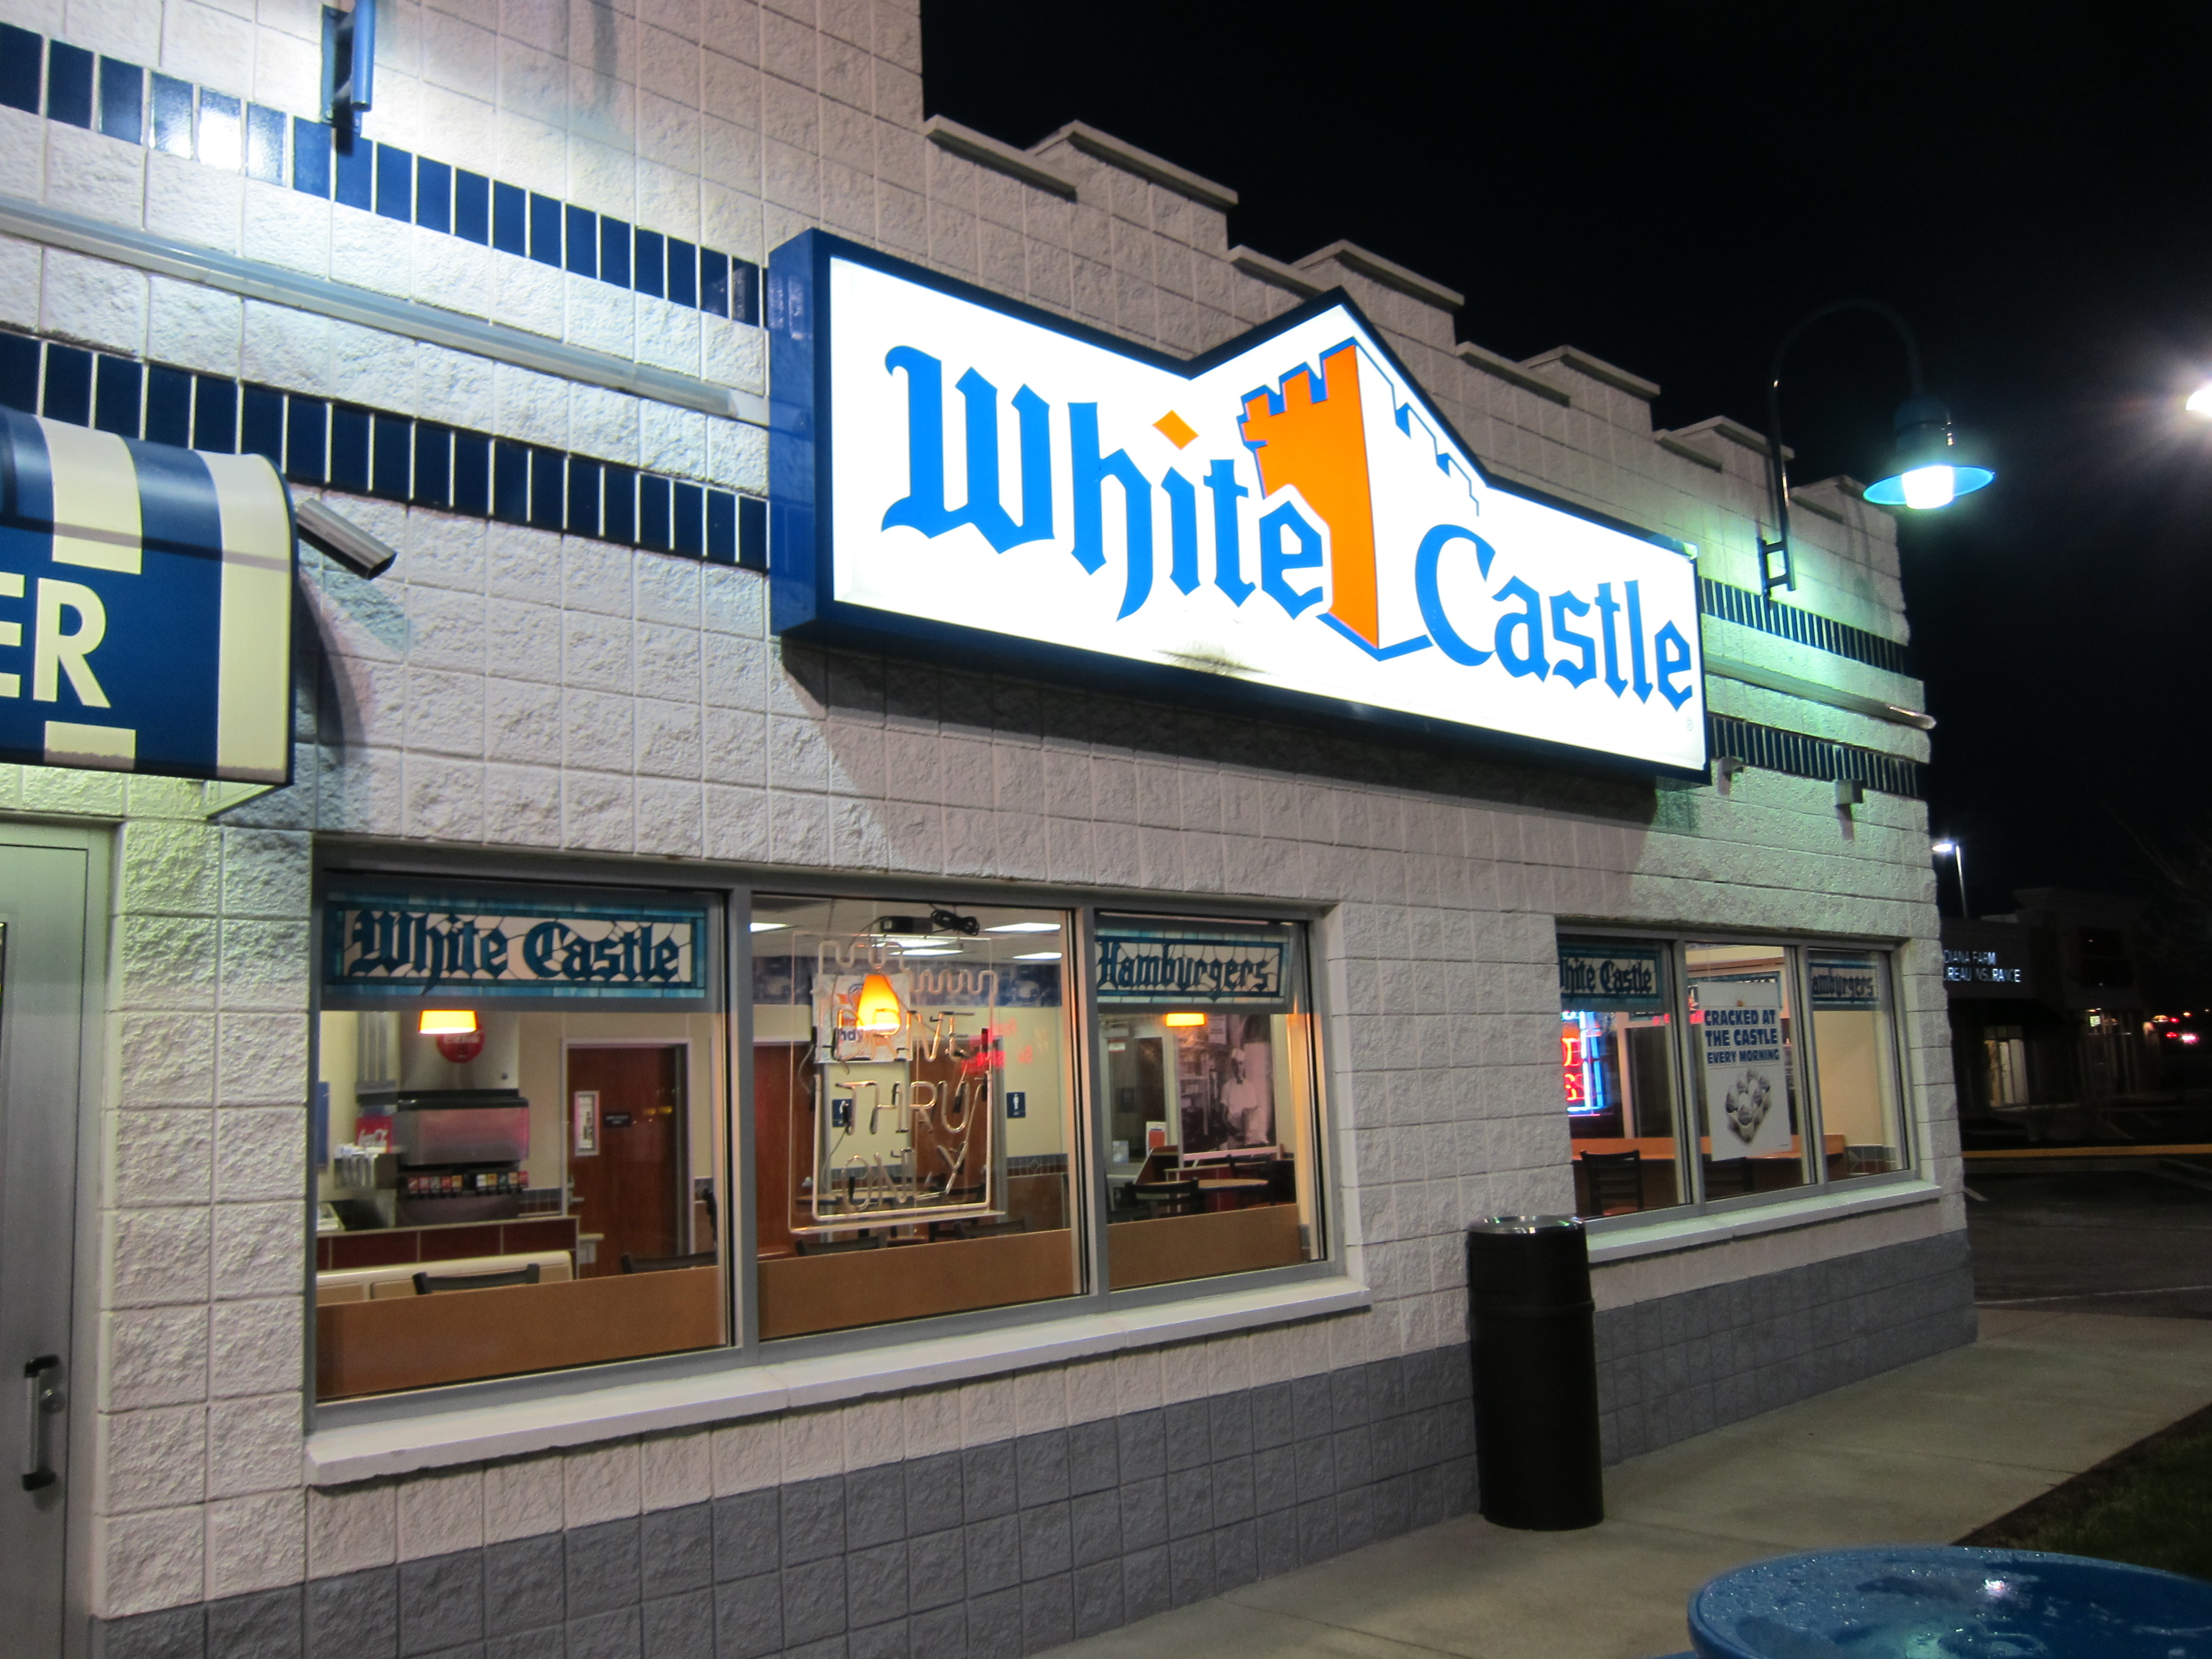 white castle Get directions, reviews and information for white castle in st louis, mo.